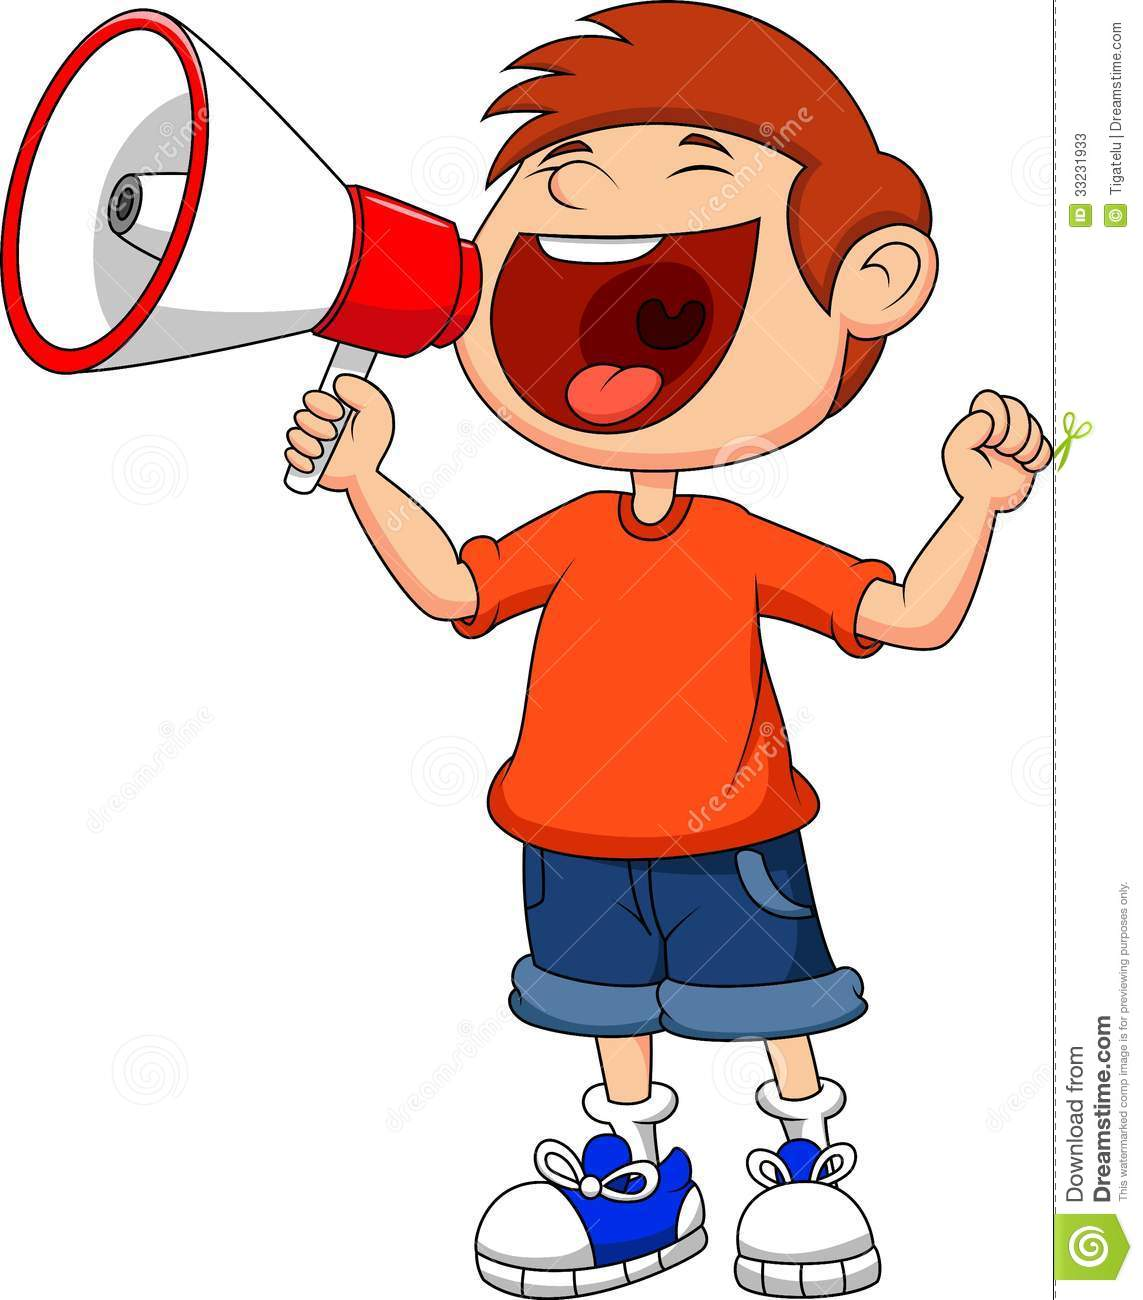 YELLING IN MEGAPHONE CLIPART IMAGE.